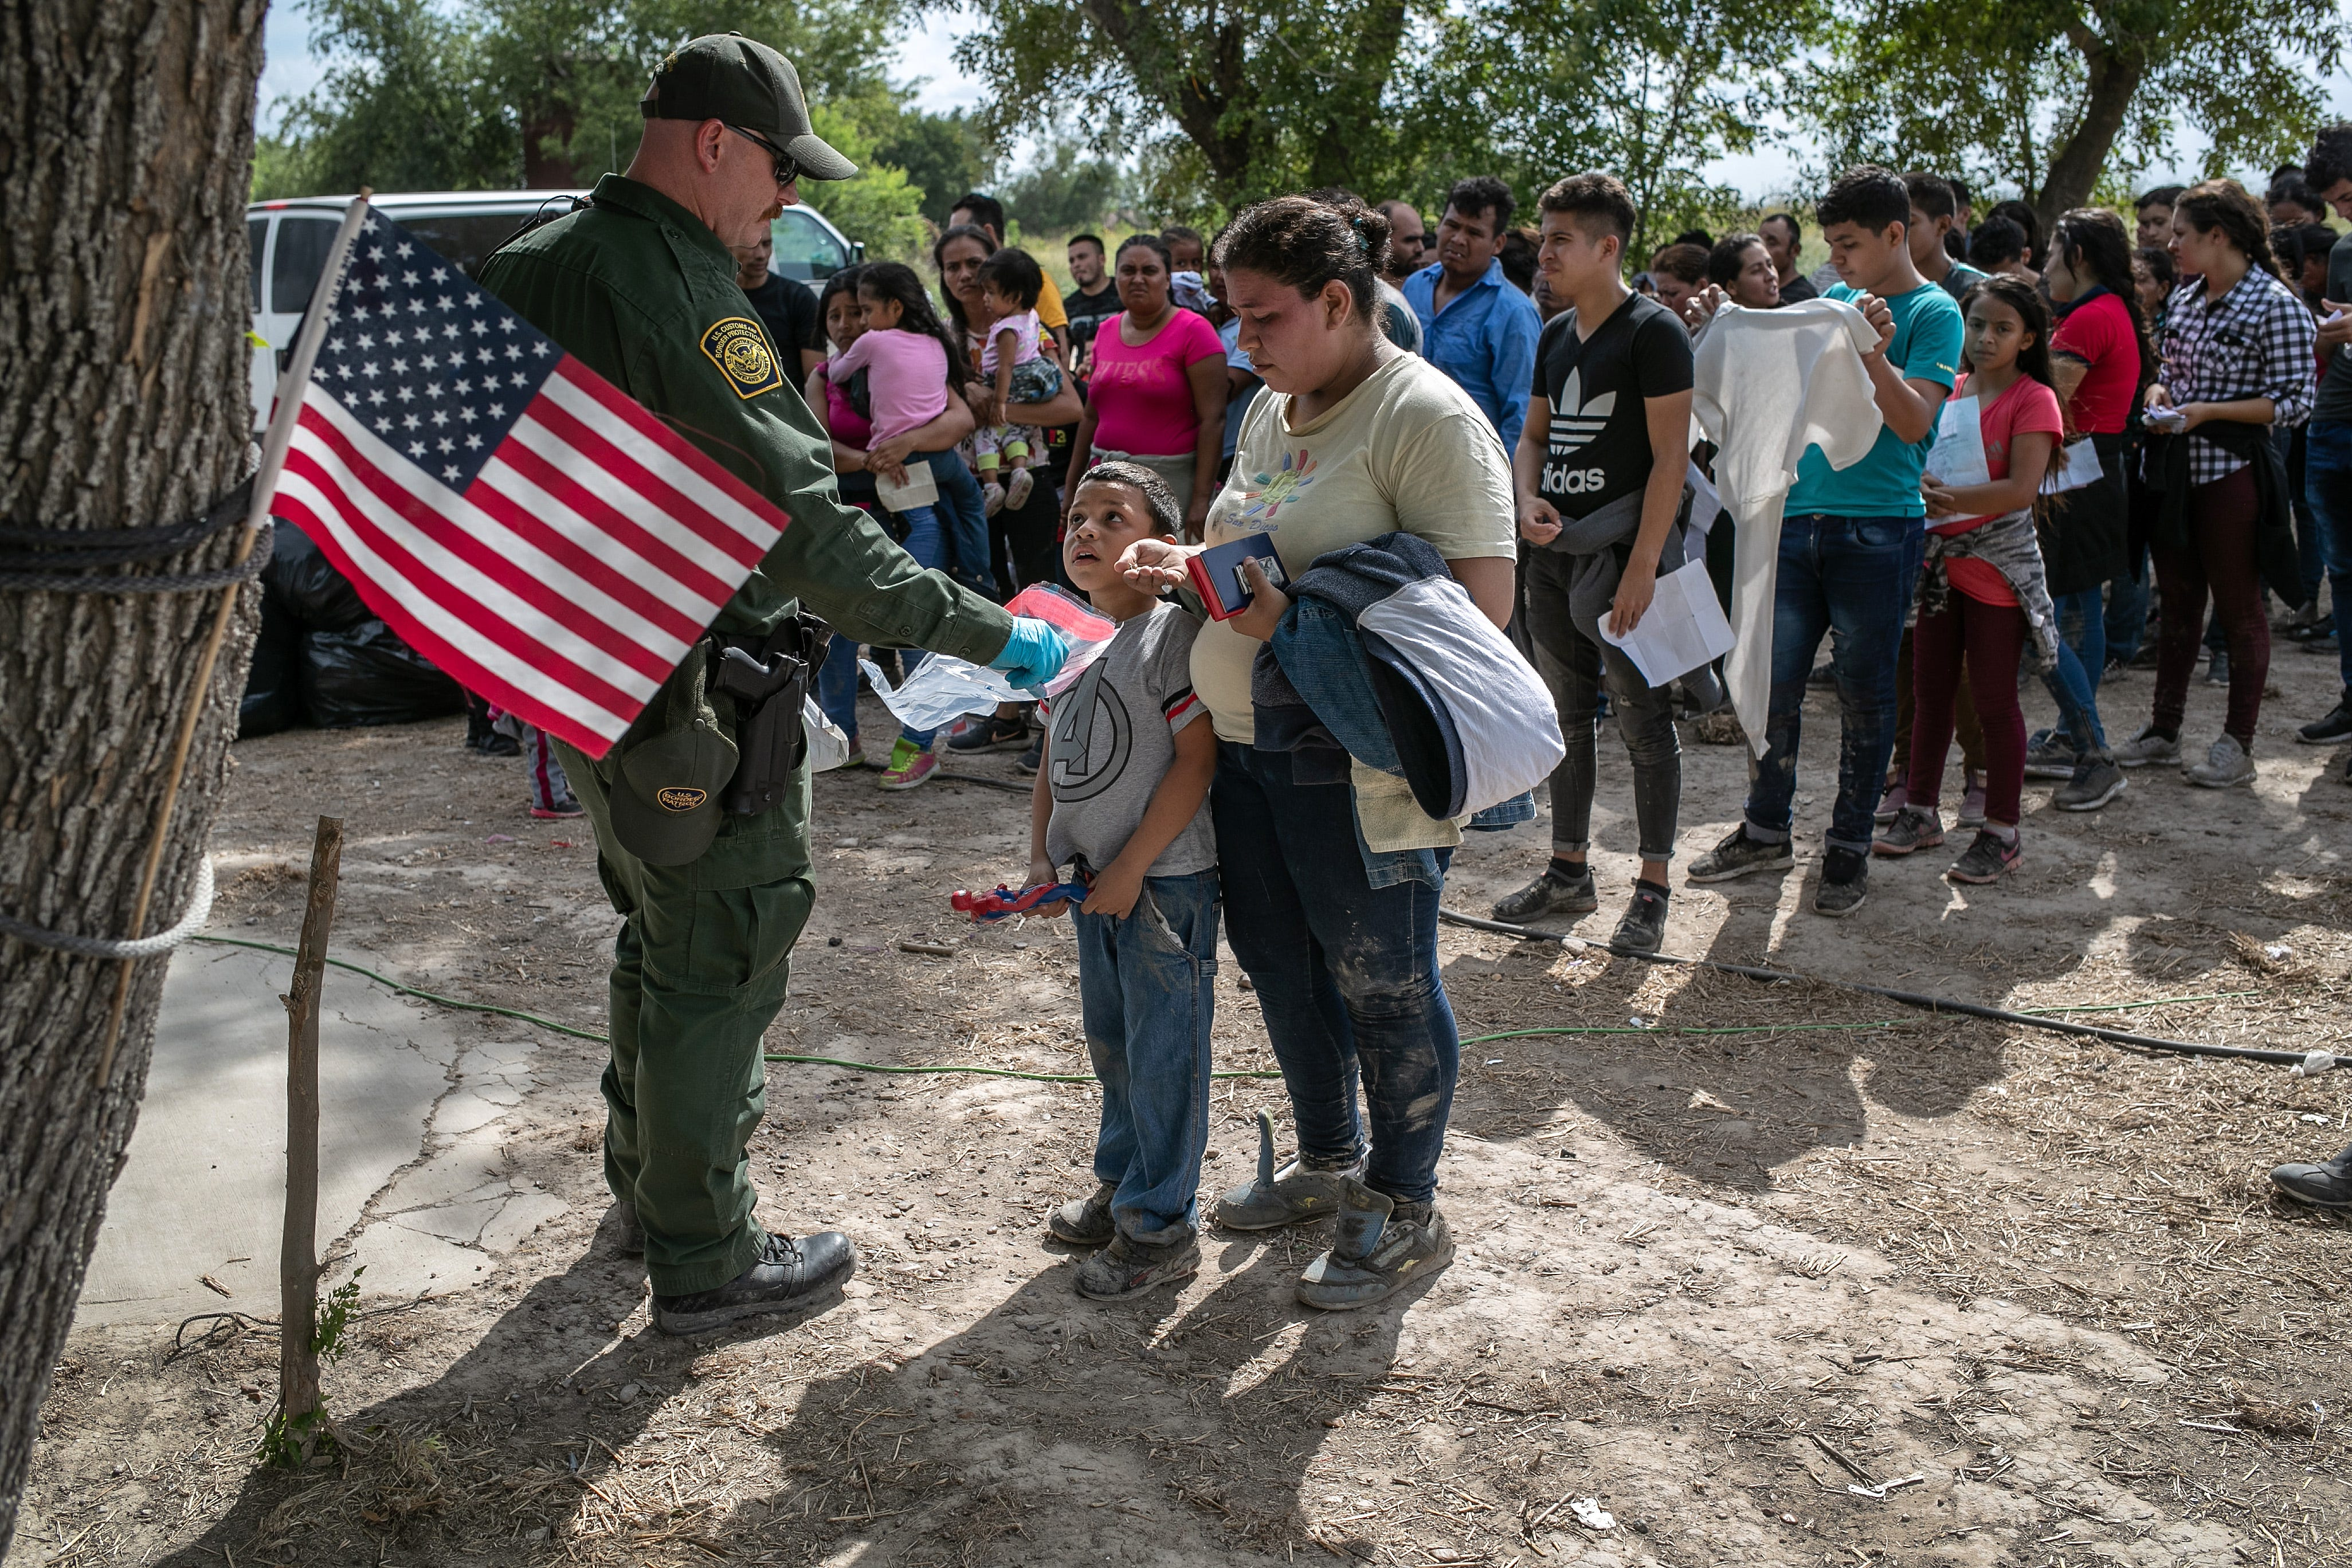 A U.S. Border Patrol agent gathers personal effects from immigrants July 2, 2019, in Los Ebanos, Texas, before they are transferred to a processing center in McAllen.